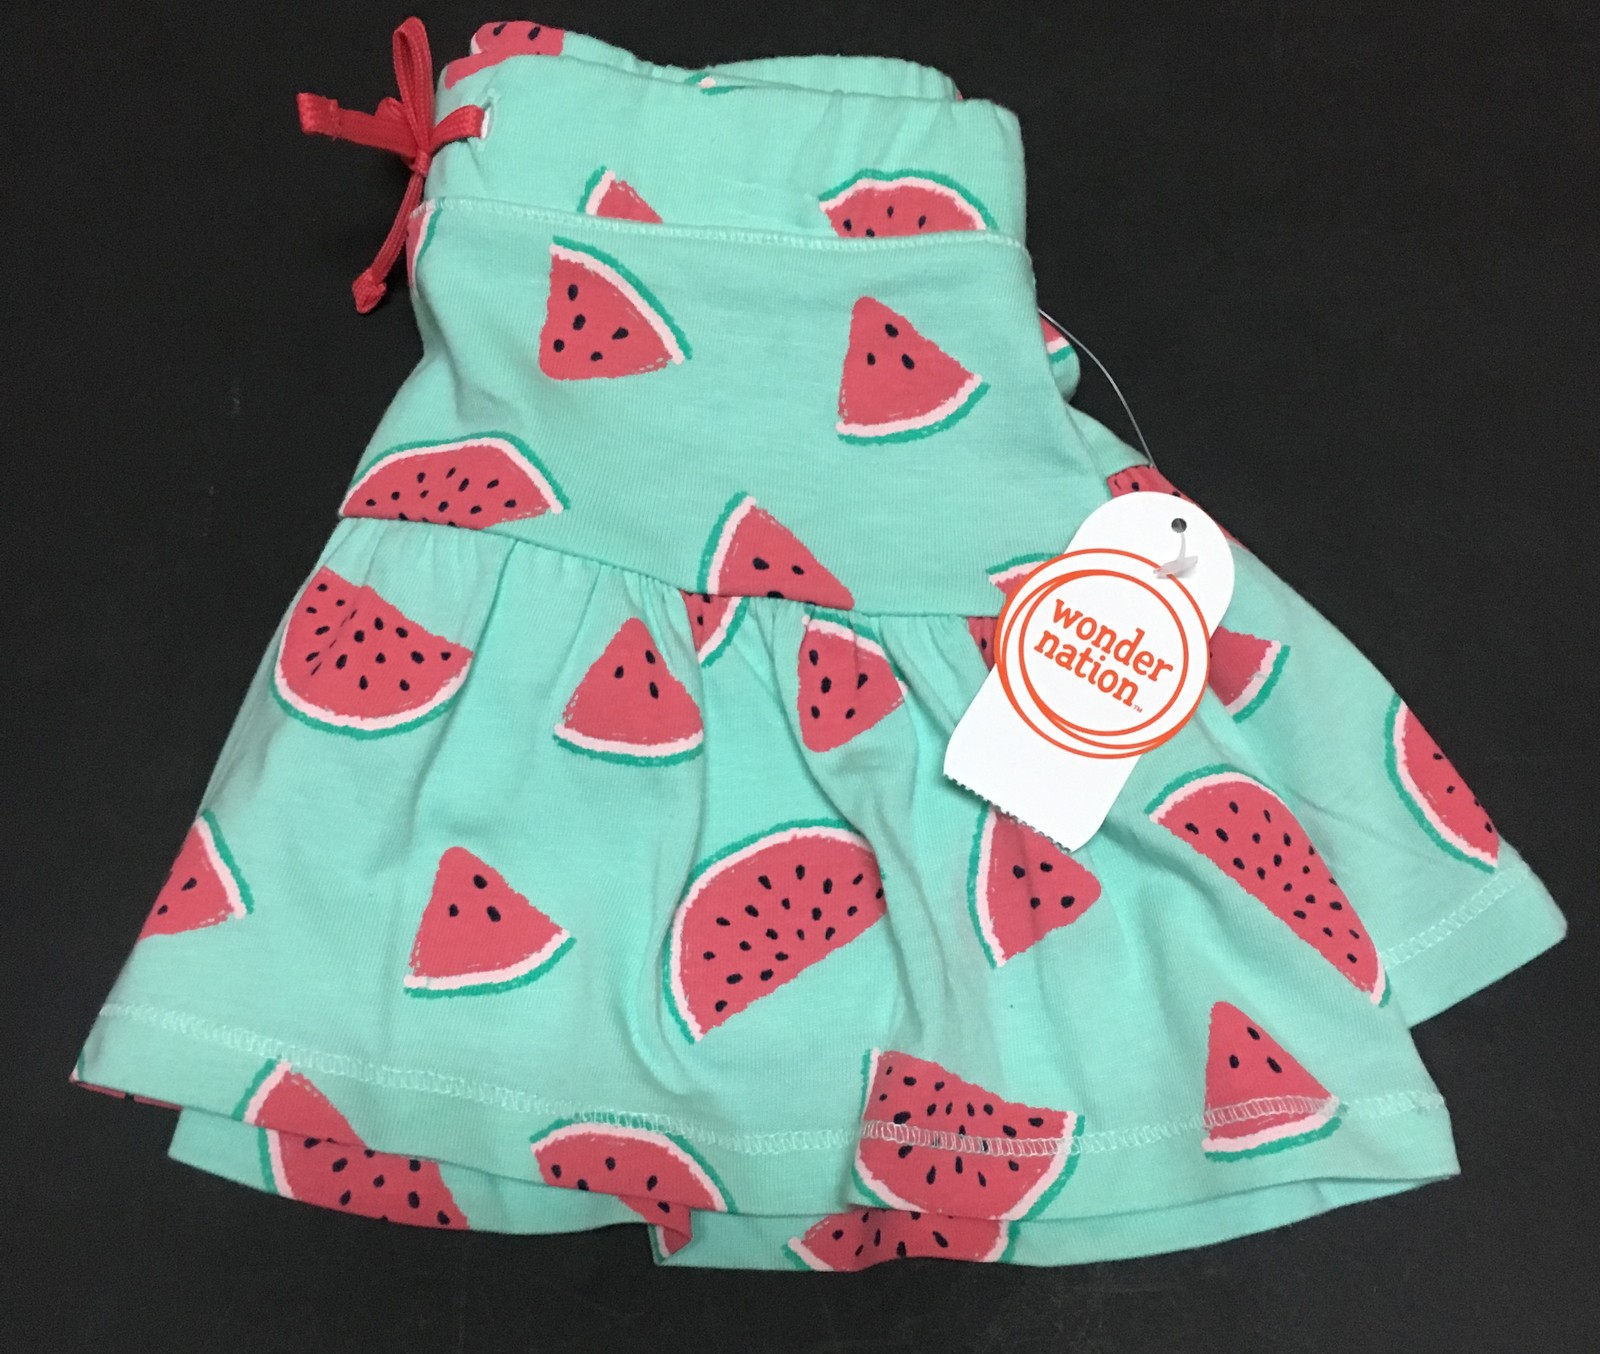 Wonder Nation Girl's Skirt Skorts Scooters NWT Watermelon Print Various Sizes